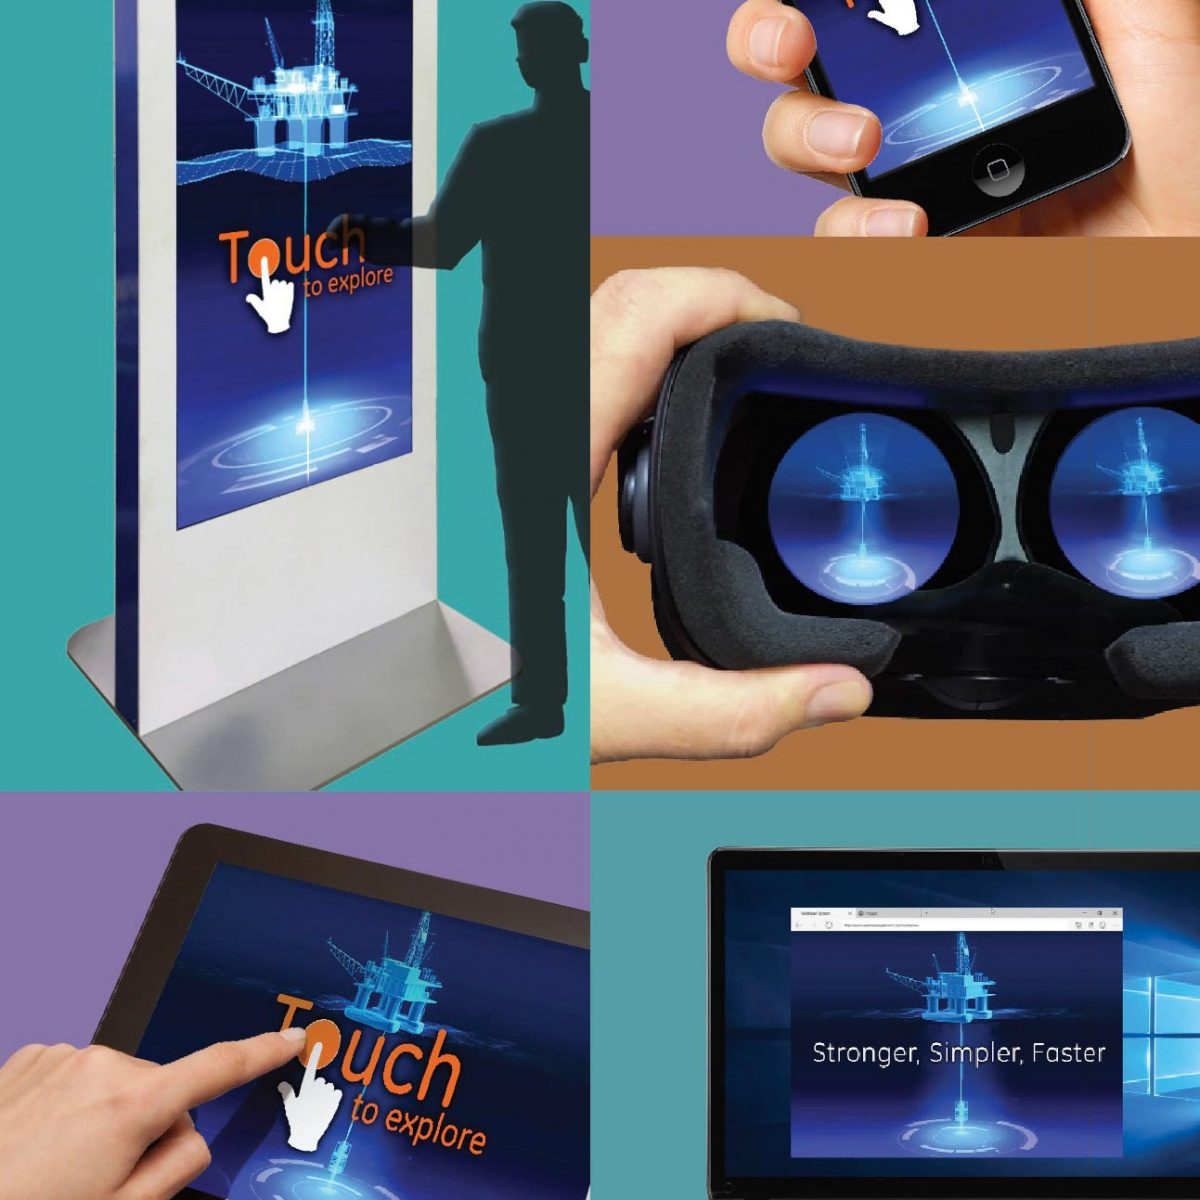 exhibitry virtual augmented reality technology